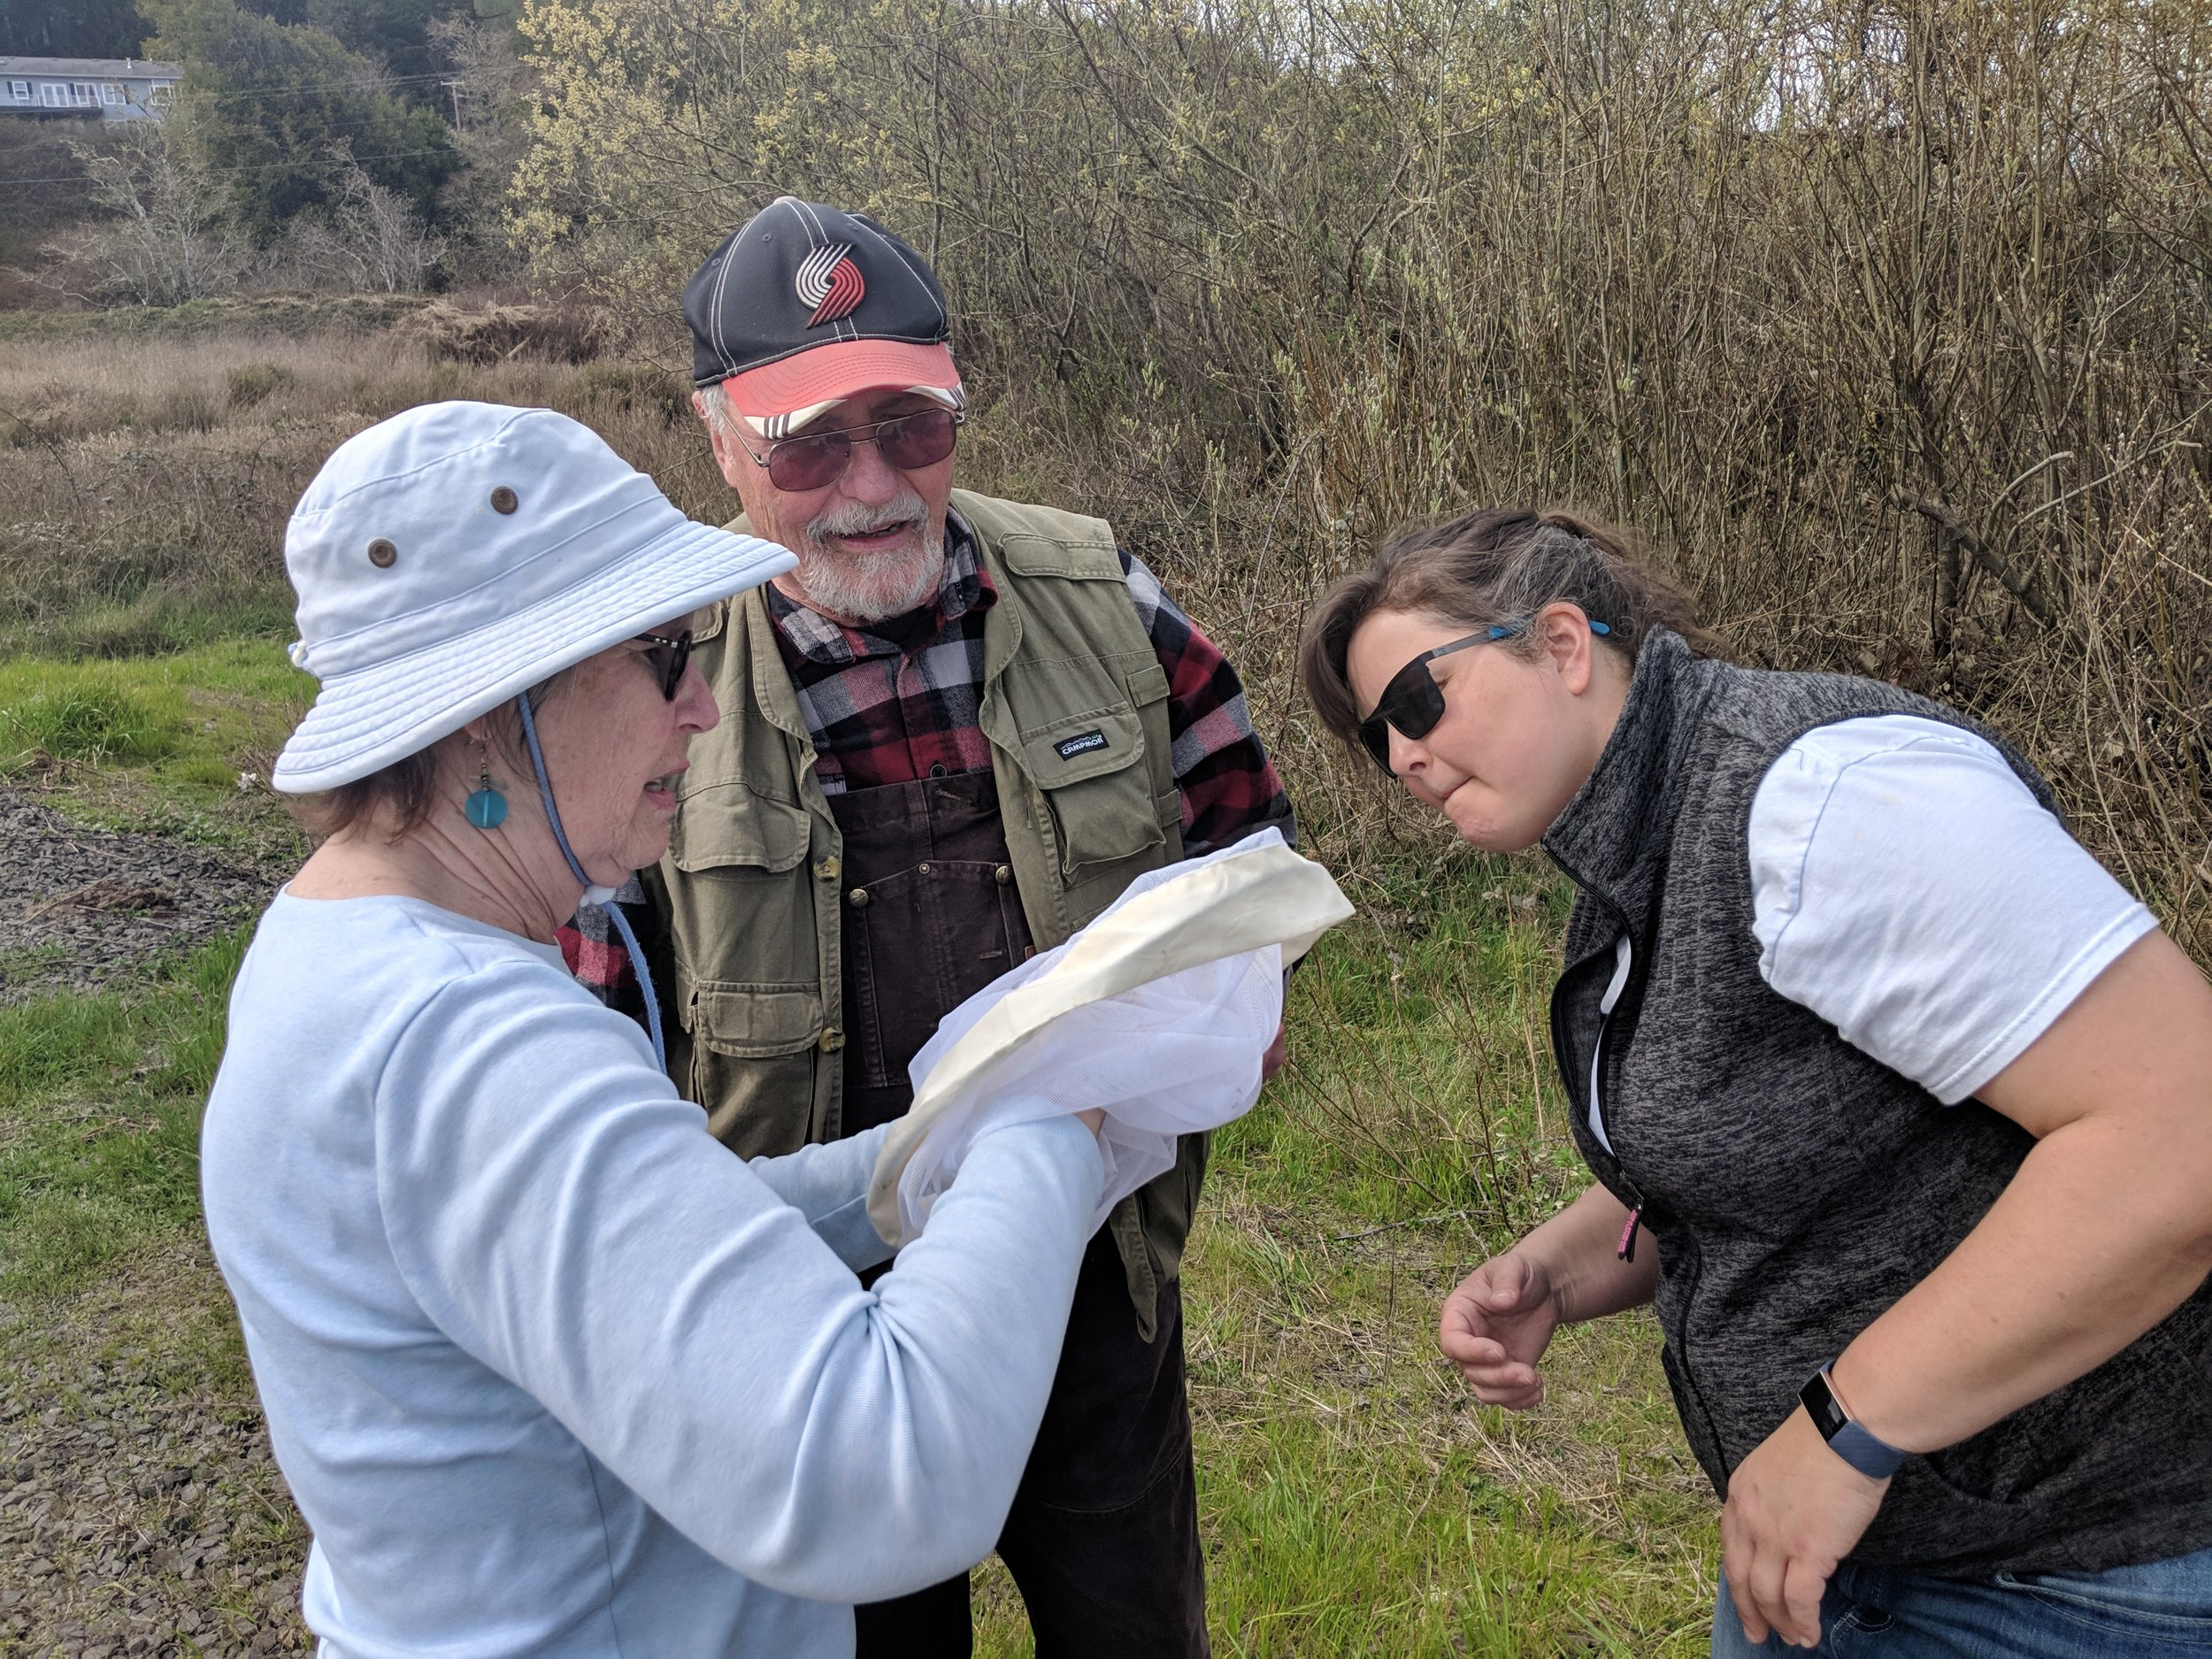 The Myrtle Point team sampling willow this past Sunday (March 24).